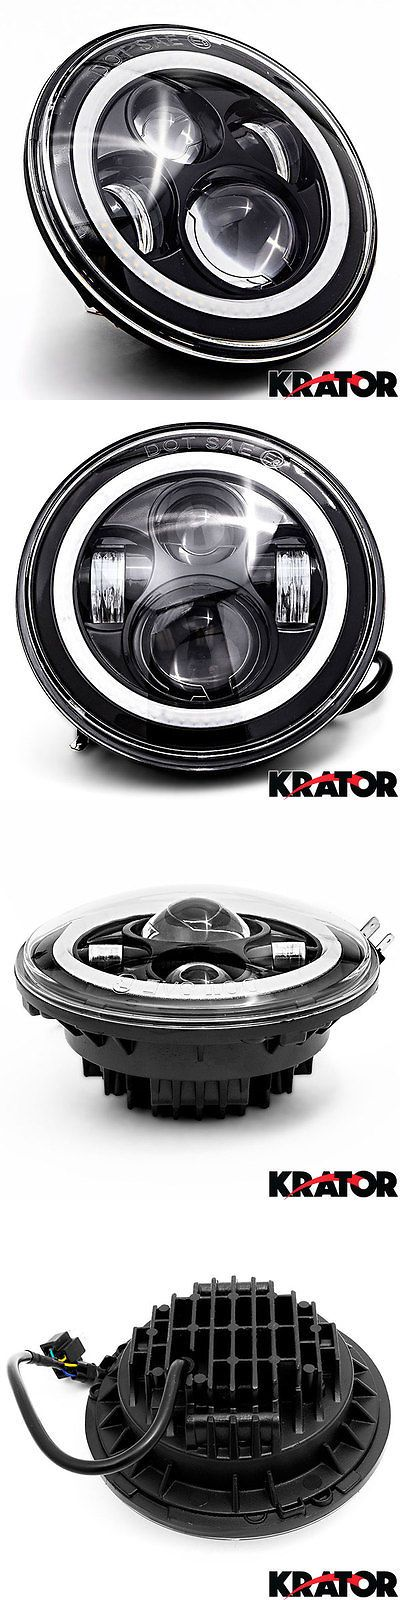 motorcycle parts: 7 Black Headlight Halo Ring For Harley Davidson Street Glide Flhx 2006-2013 BUY IT NOW ONLY: $63.99